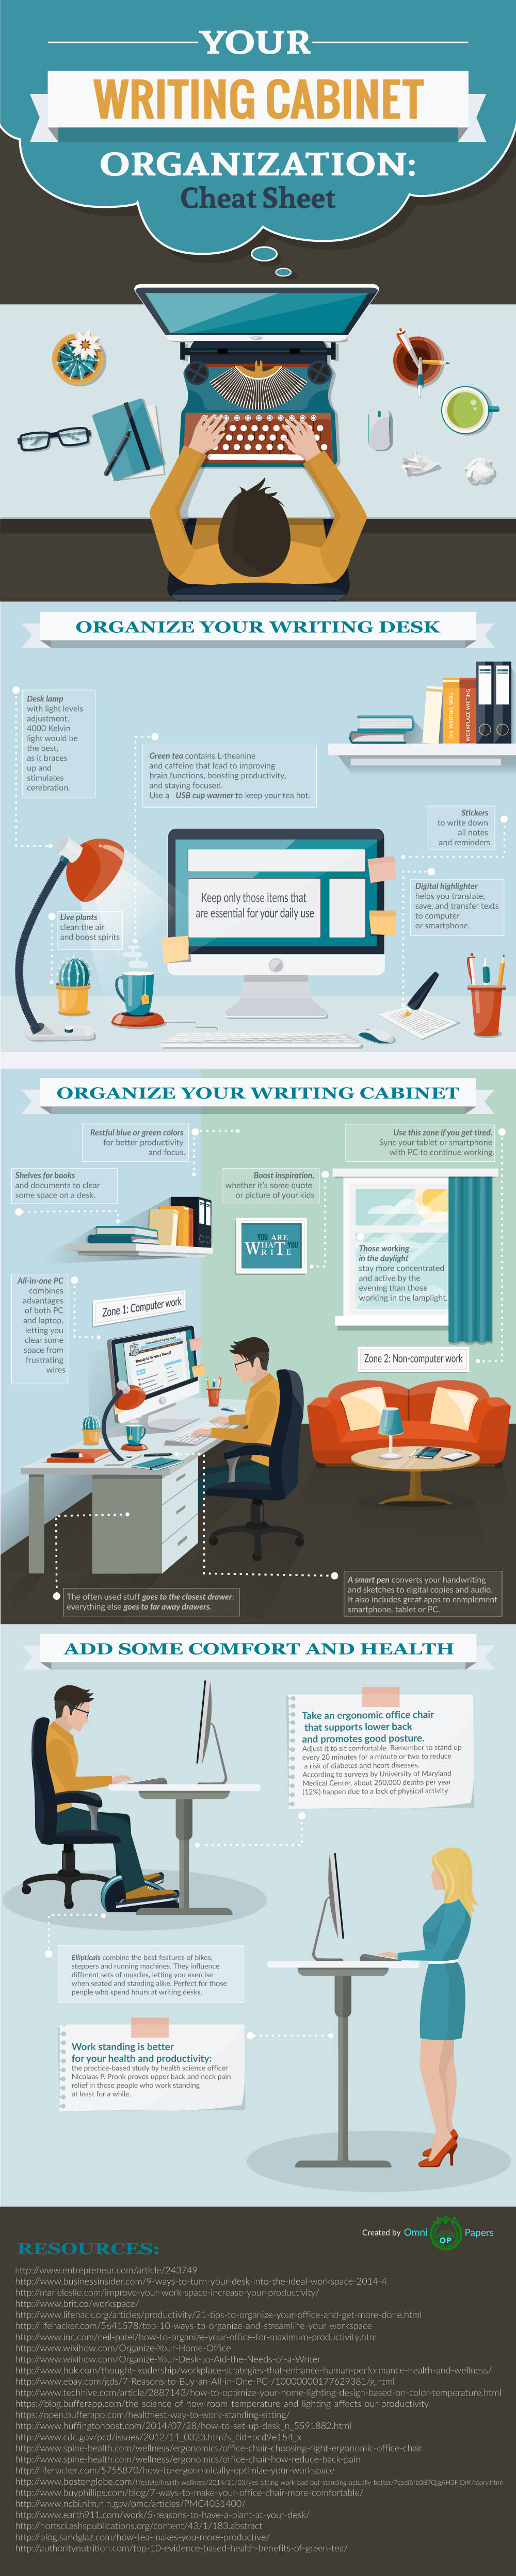 your-writing-cabinet-organization-infographic